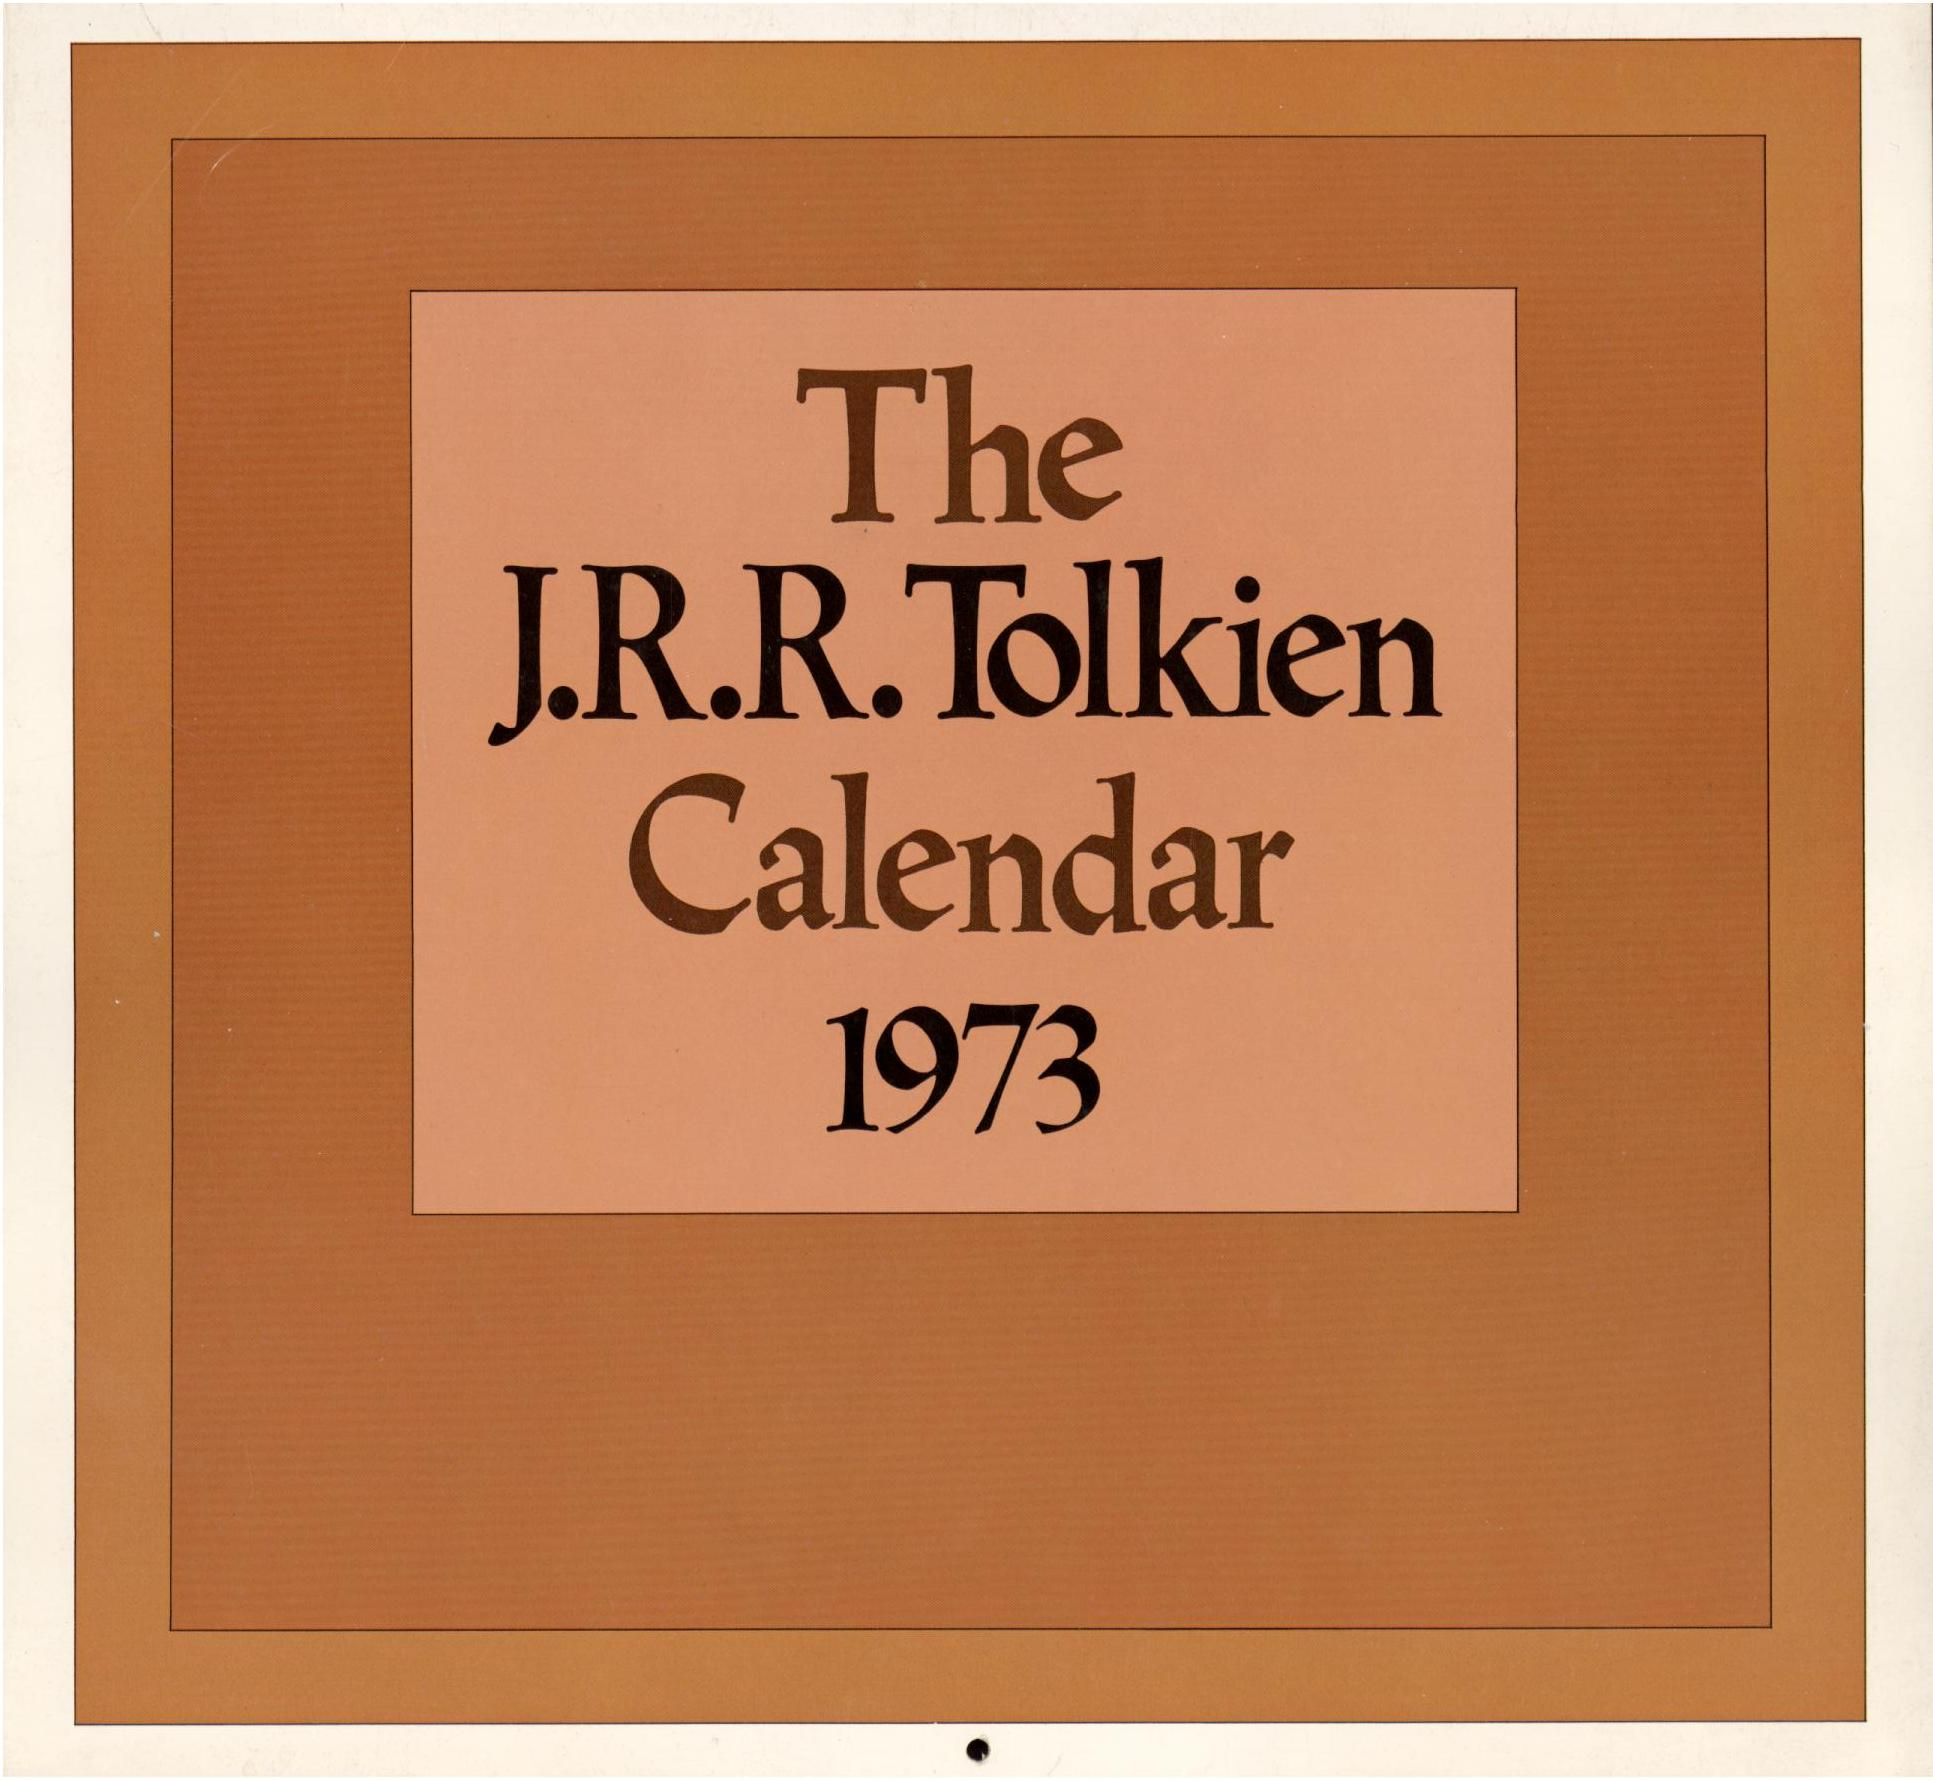 Image for 1973 J. R. R. TOLKIEN CALENDAR (First Printing)